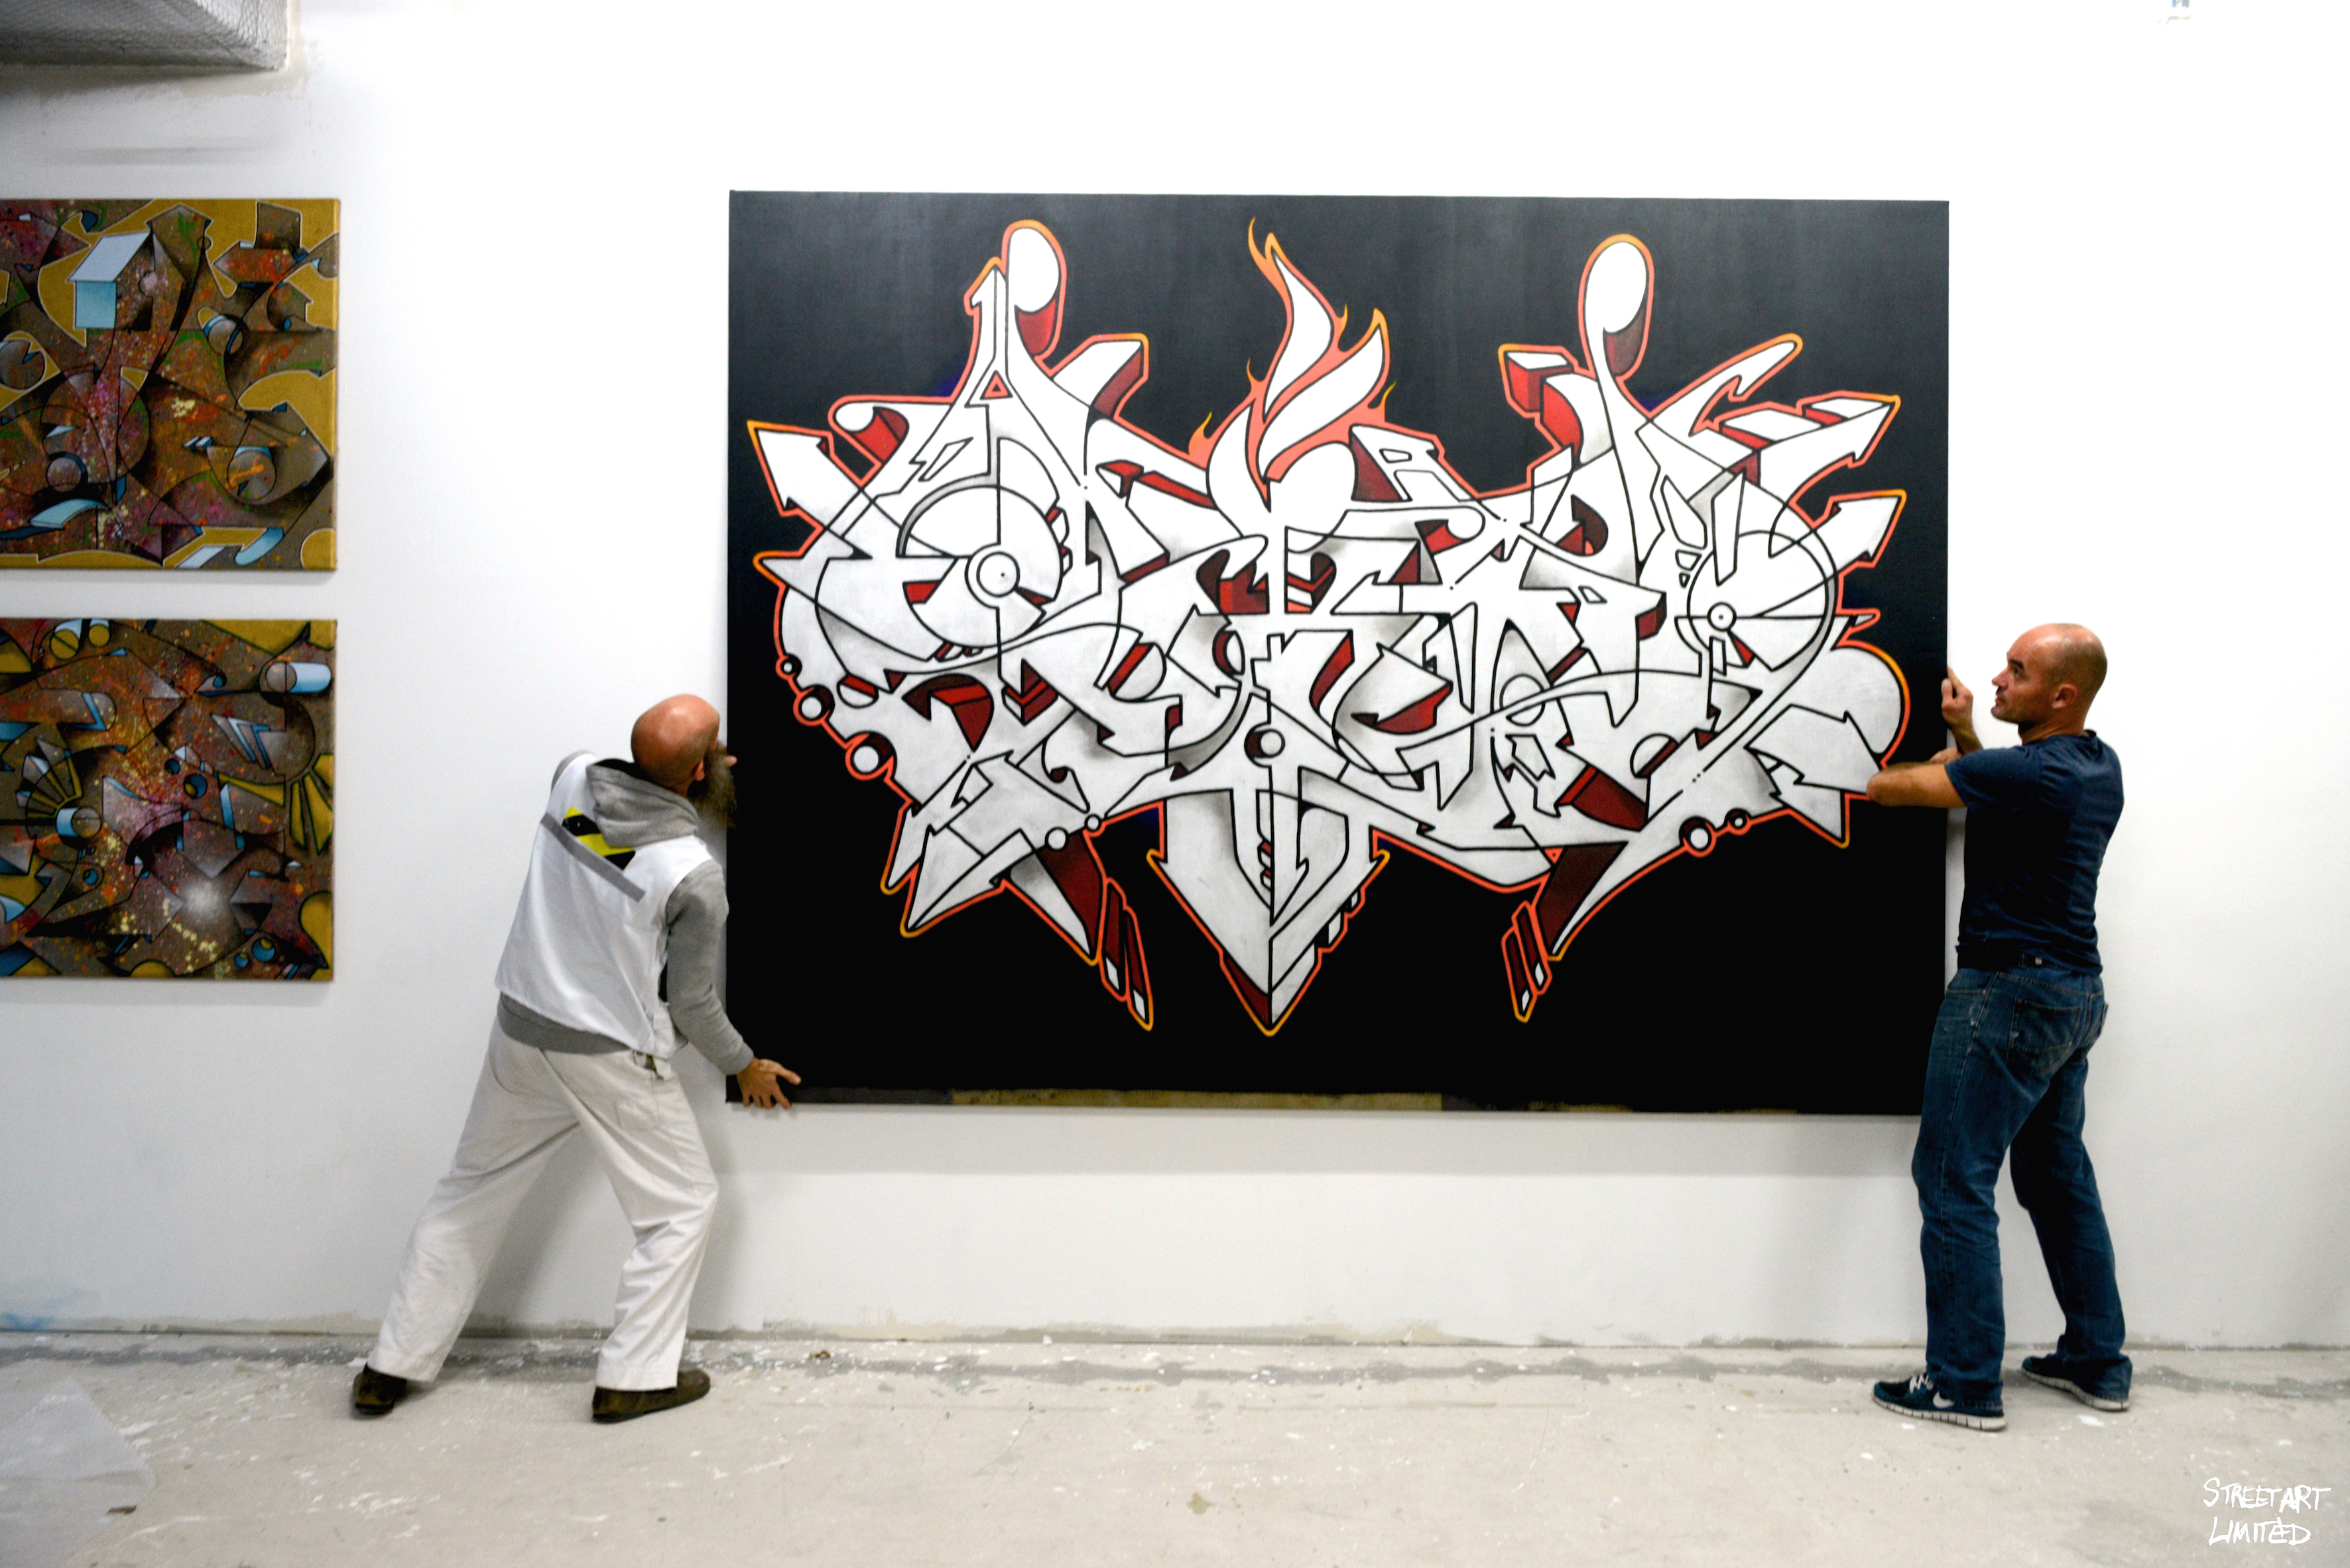 'The Beginning' | Streetart.Limited